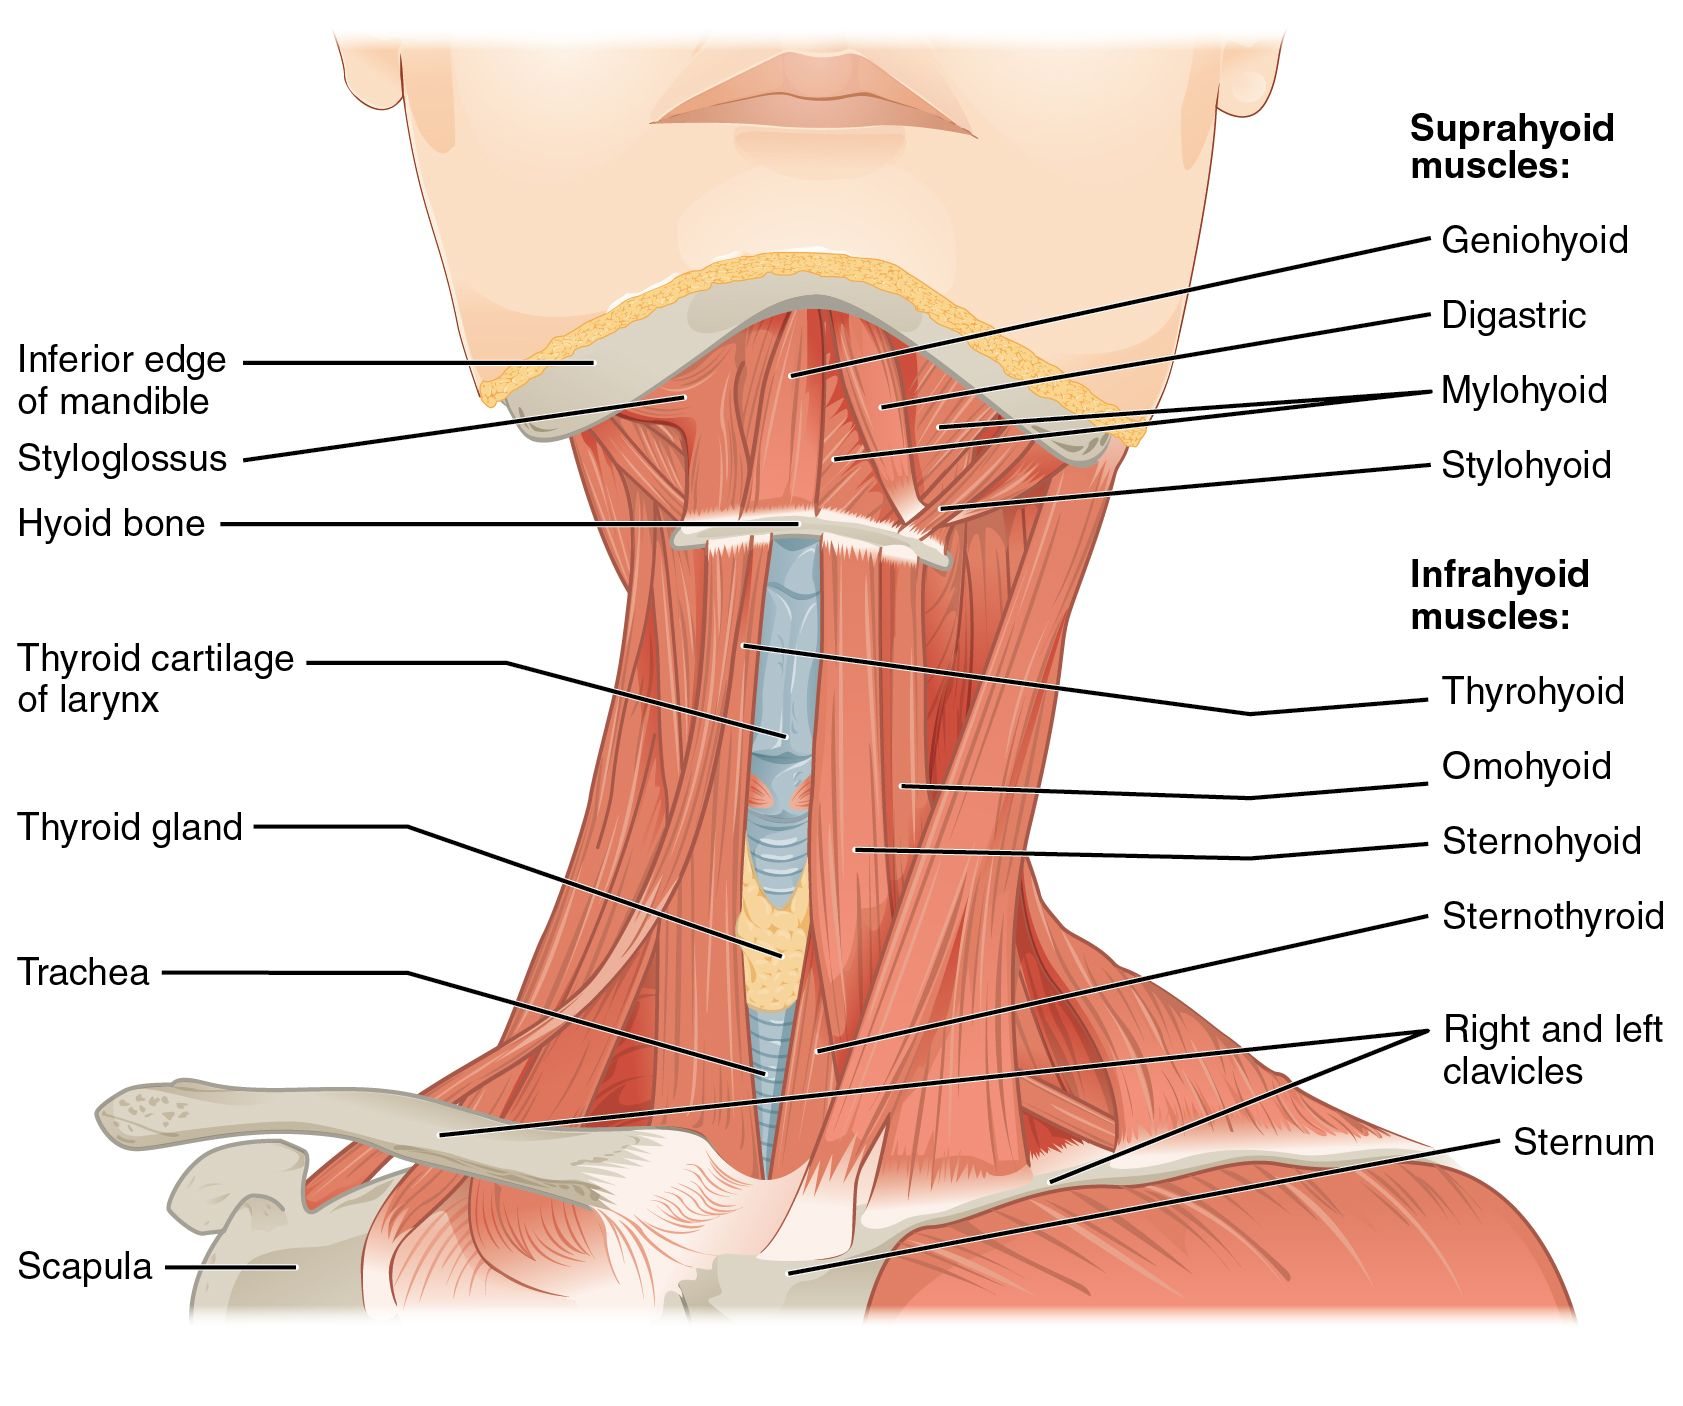 Skeletal Anatomy Coloring Pages Showing Also Hyoid Bone This